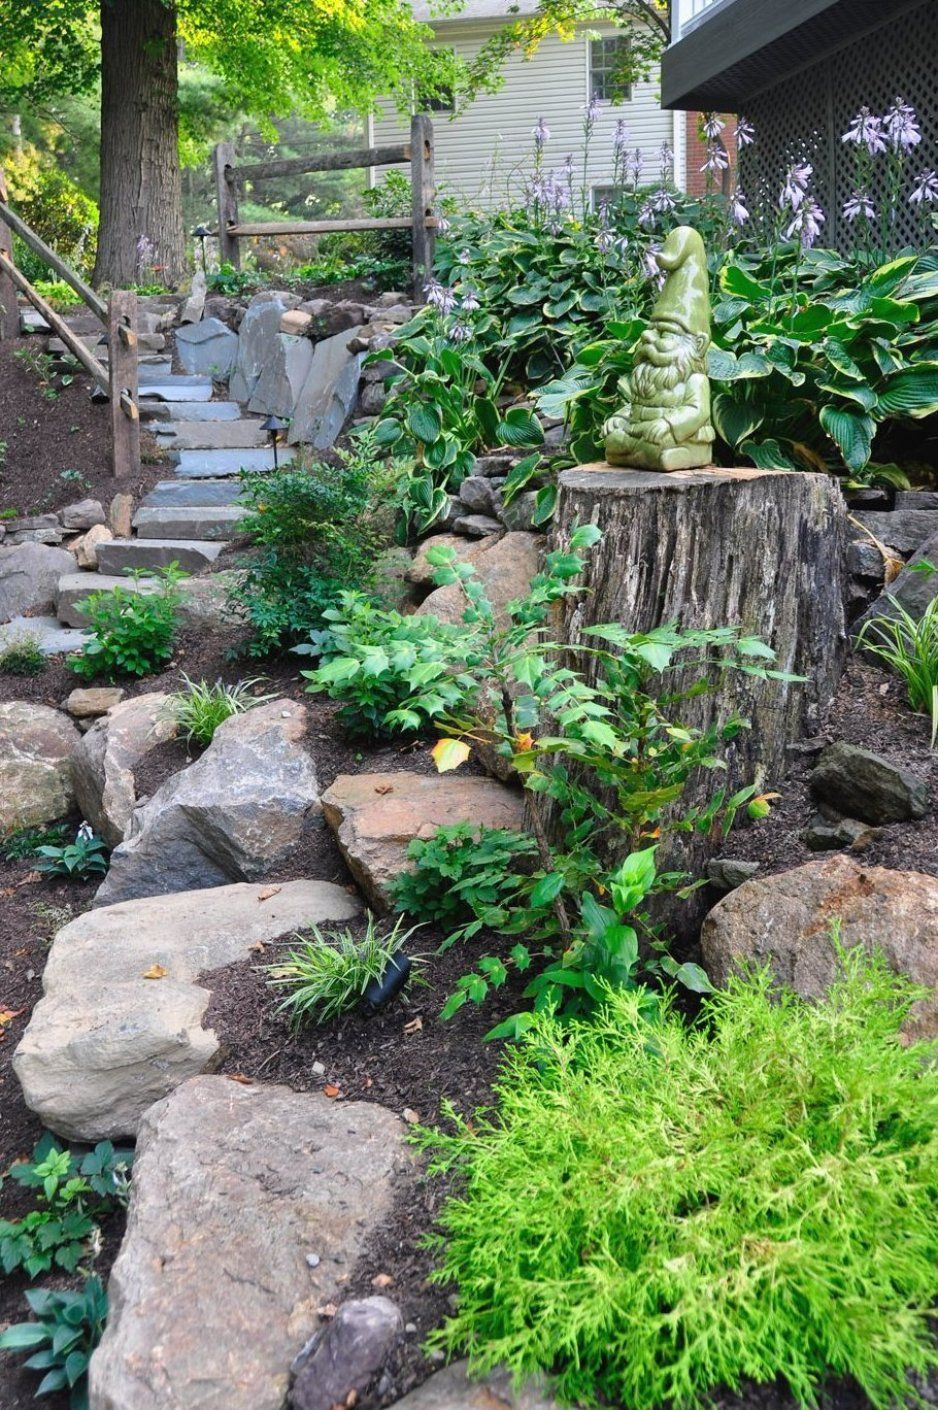 Landscape Design In Broomall Pa Naturescapes Fantastic Room Decor Suggestions For Gardens In 2020 Landscaping With Rocks Rock Garden Front Yard Landscaping